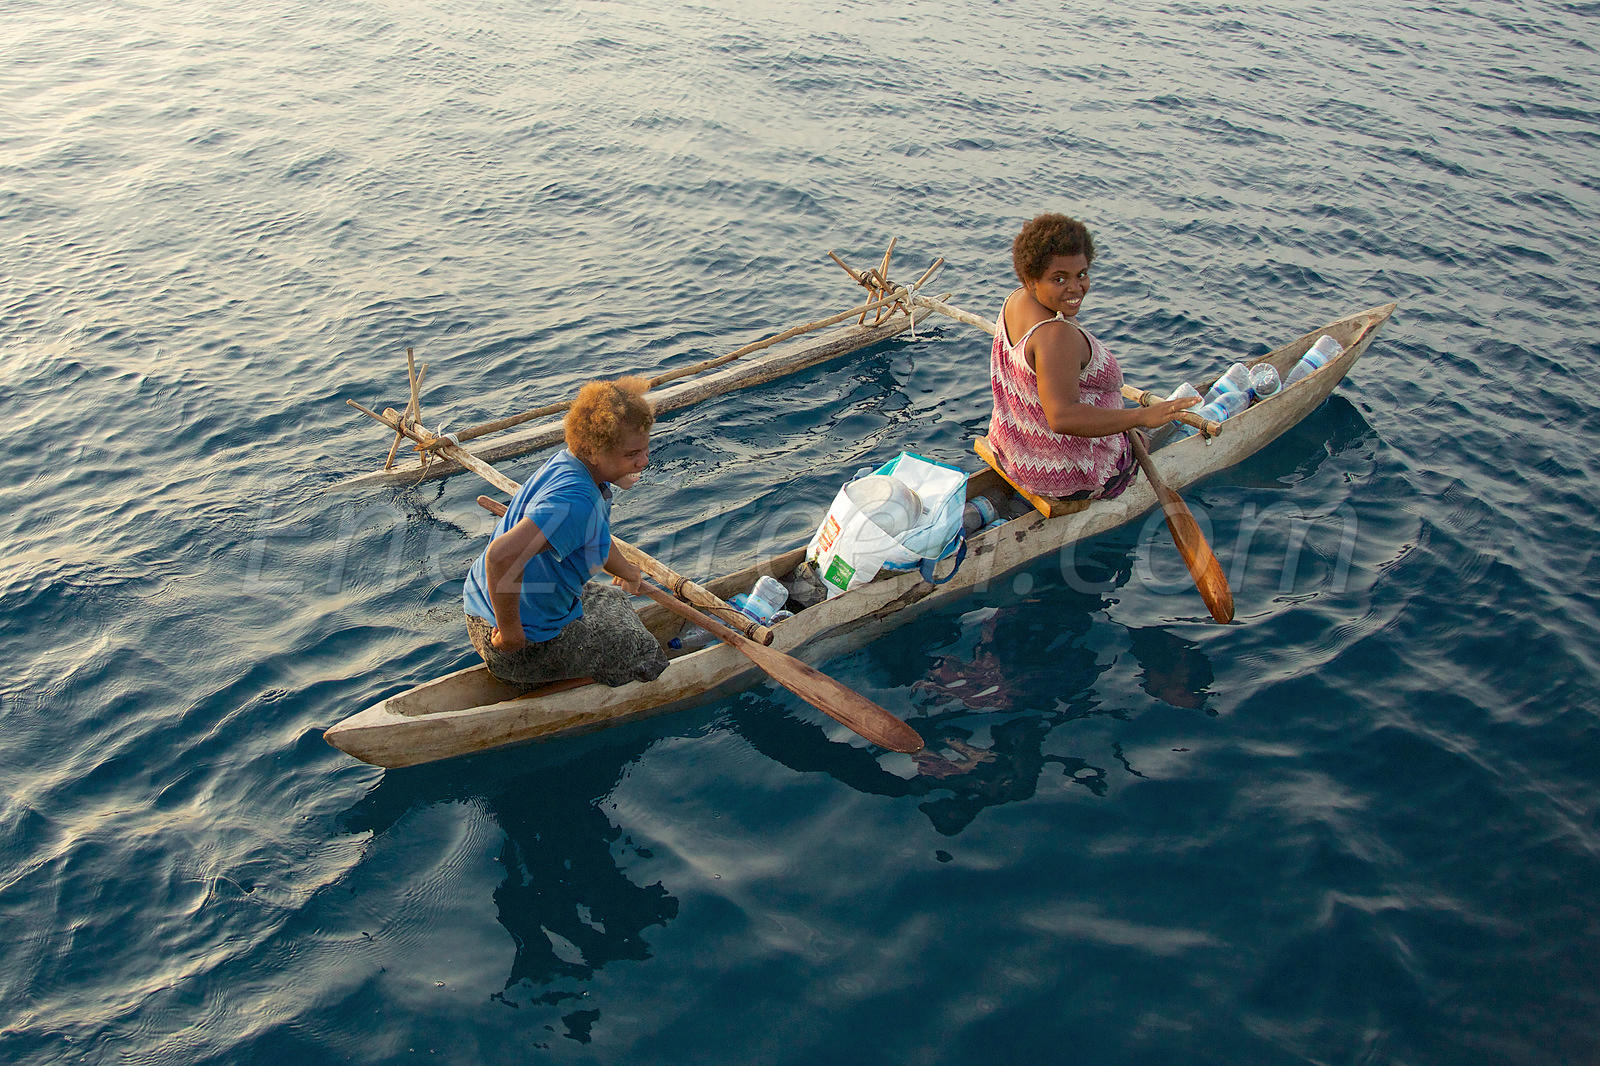 Vanua Lava natives on Wooden canoes